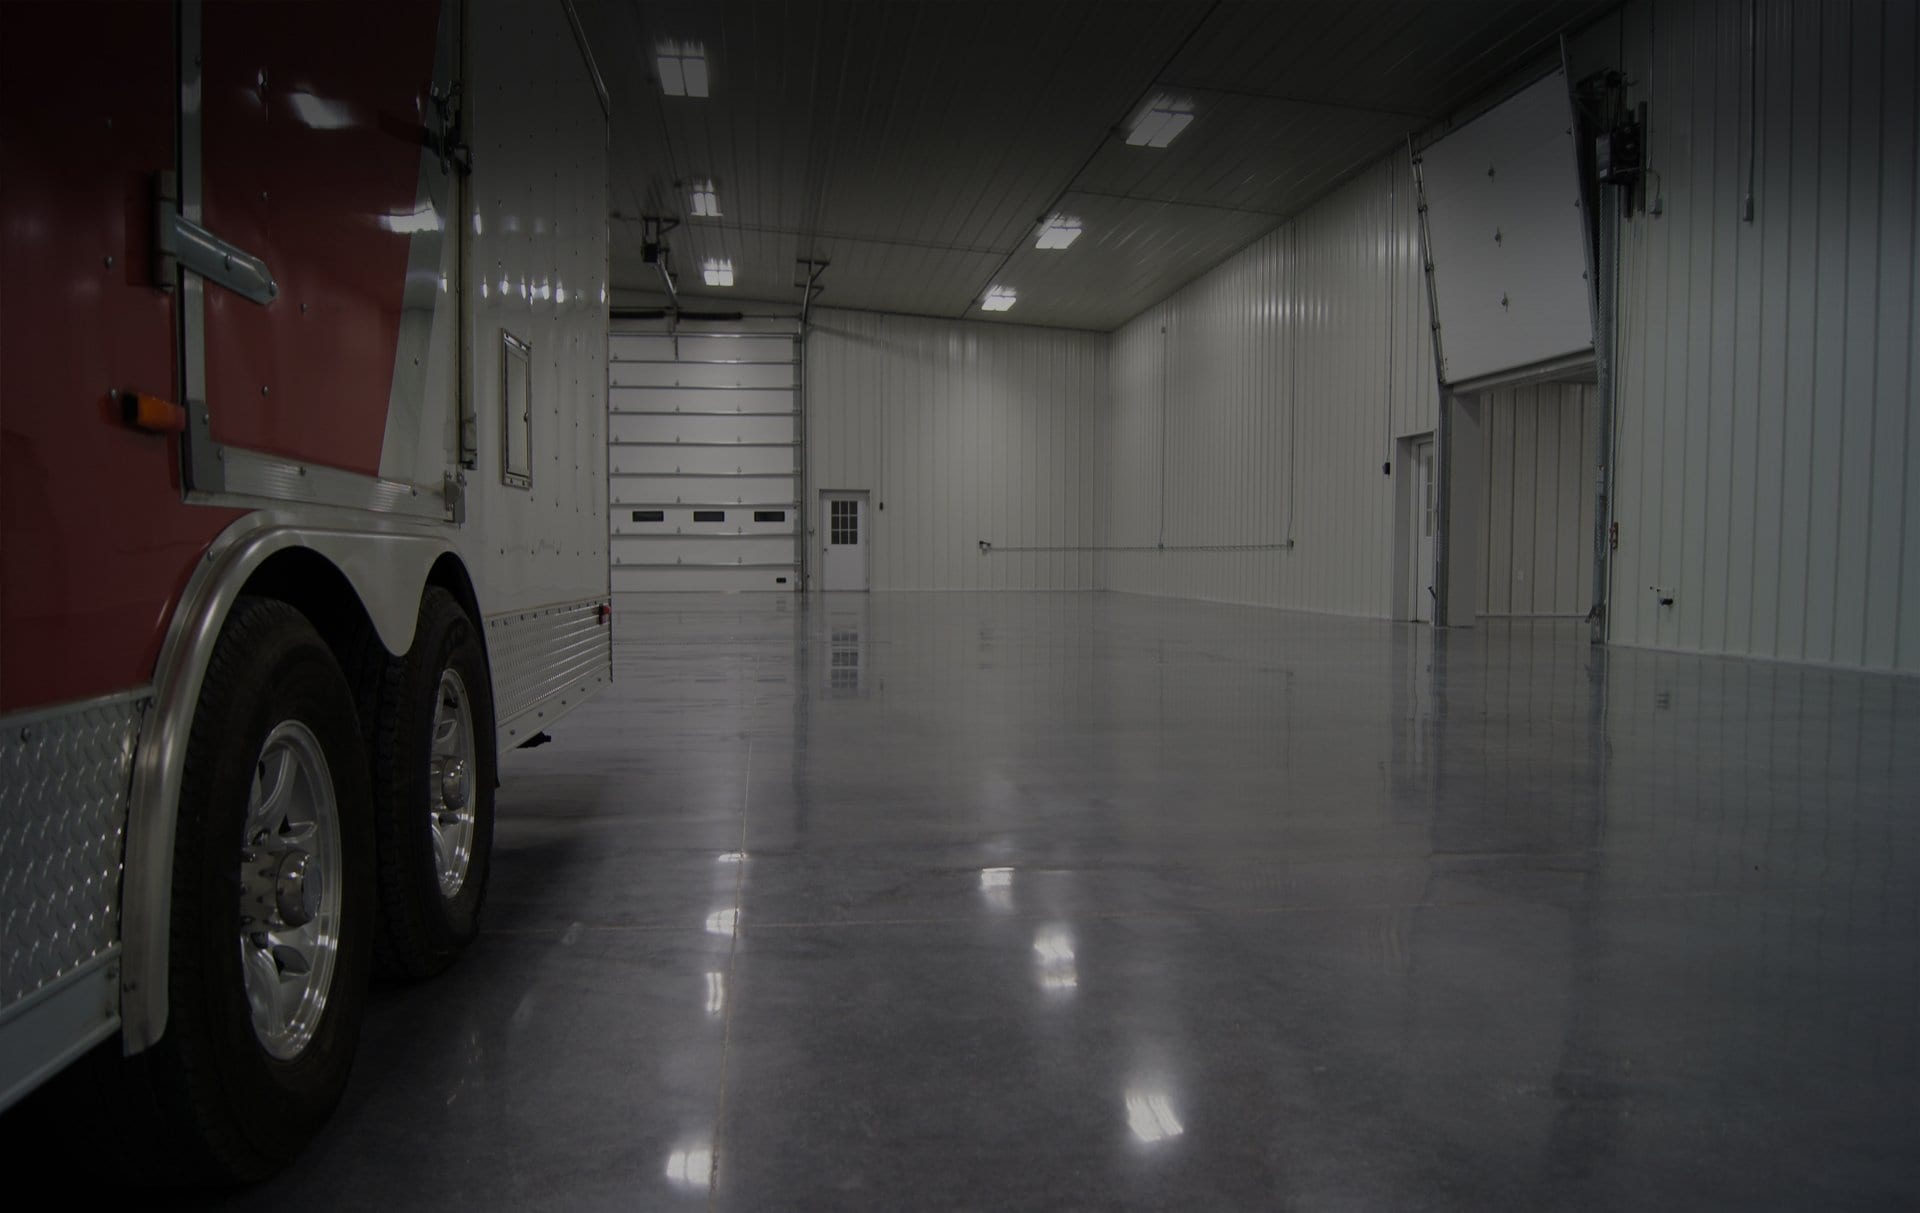 GIVE YOUR BUSINESS A HIGH-END LOOK WITH POLISHED CONCRETE